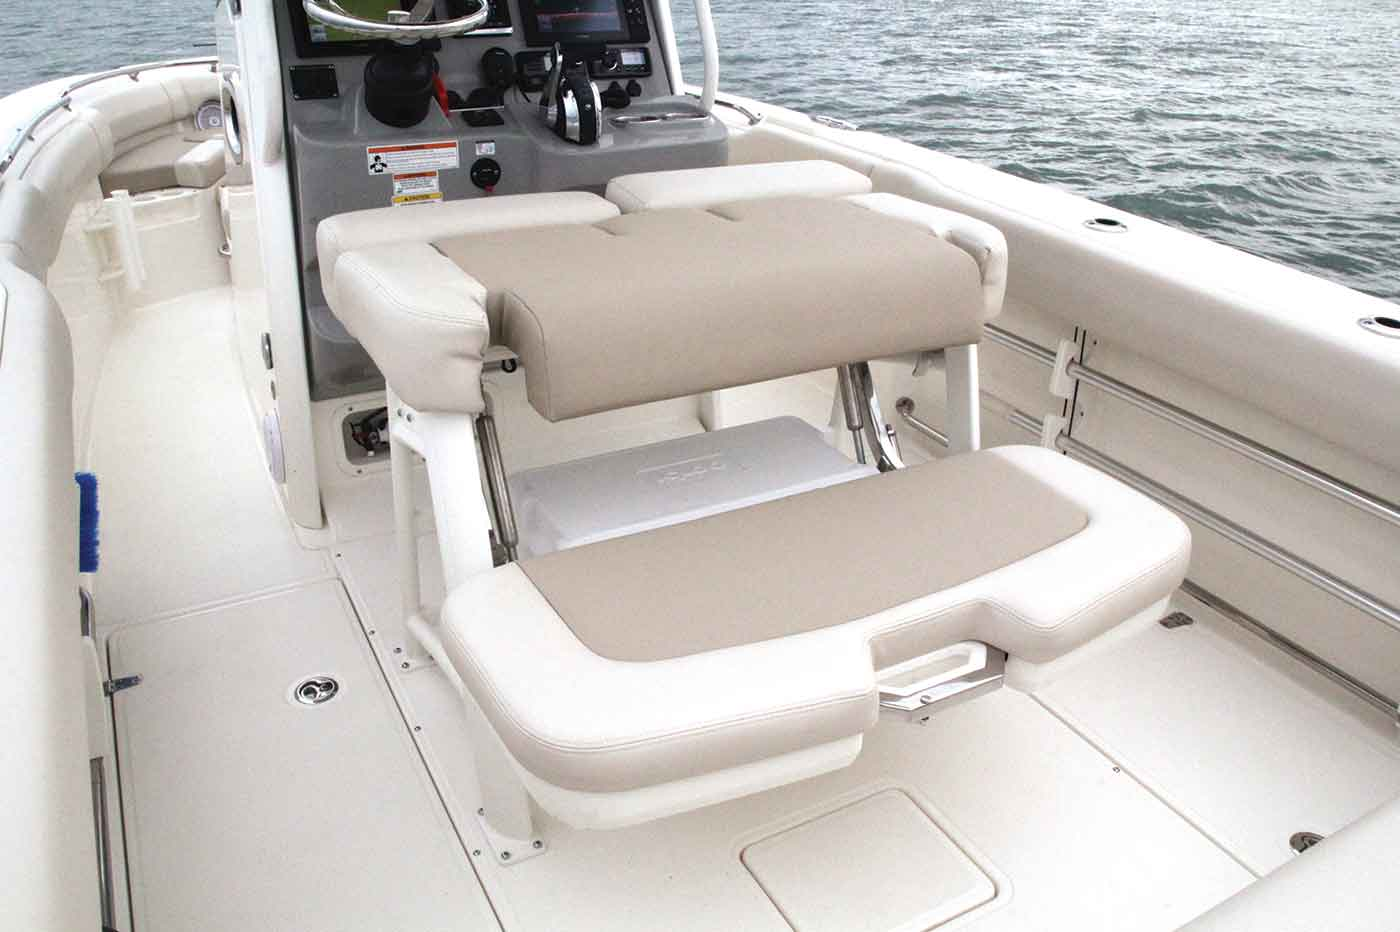 230 Outrage Boat Model | Boston Whaler